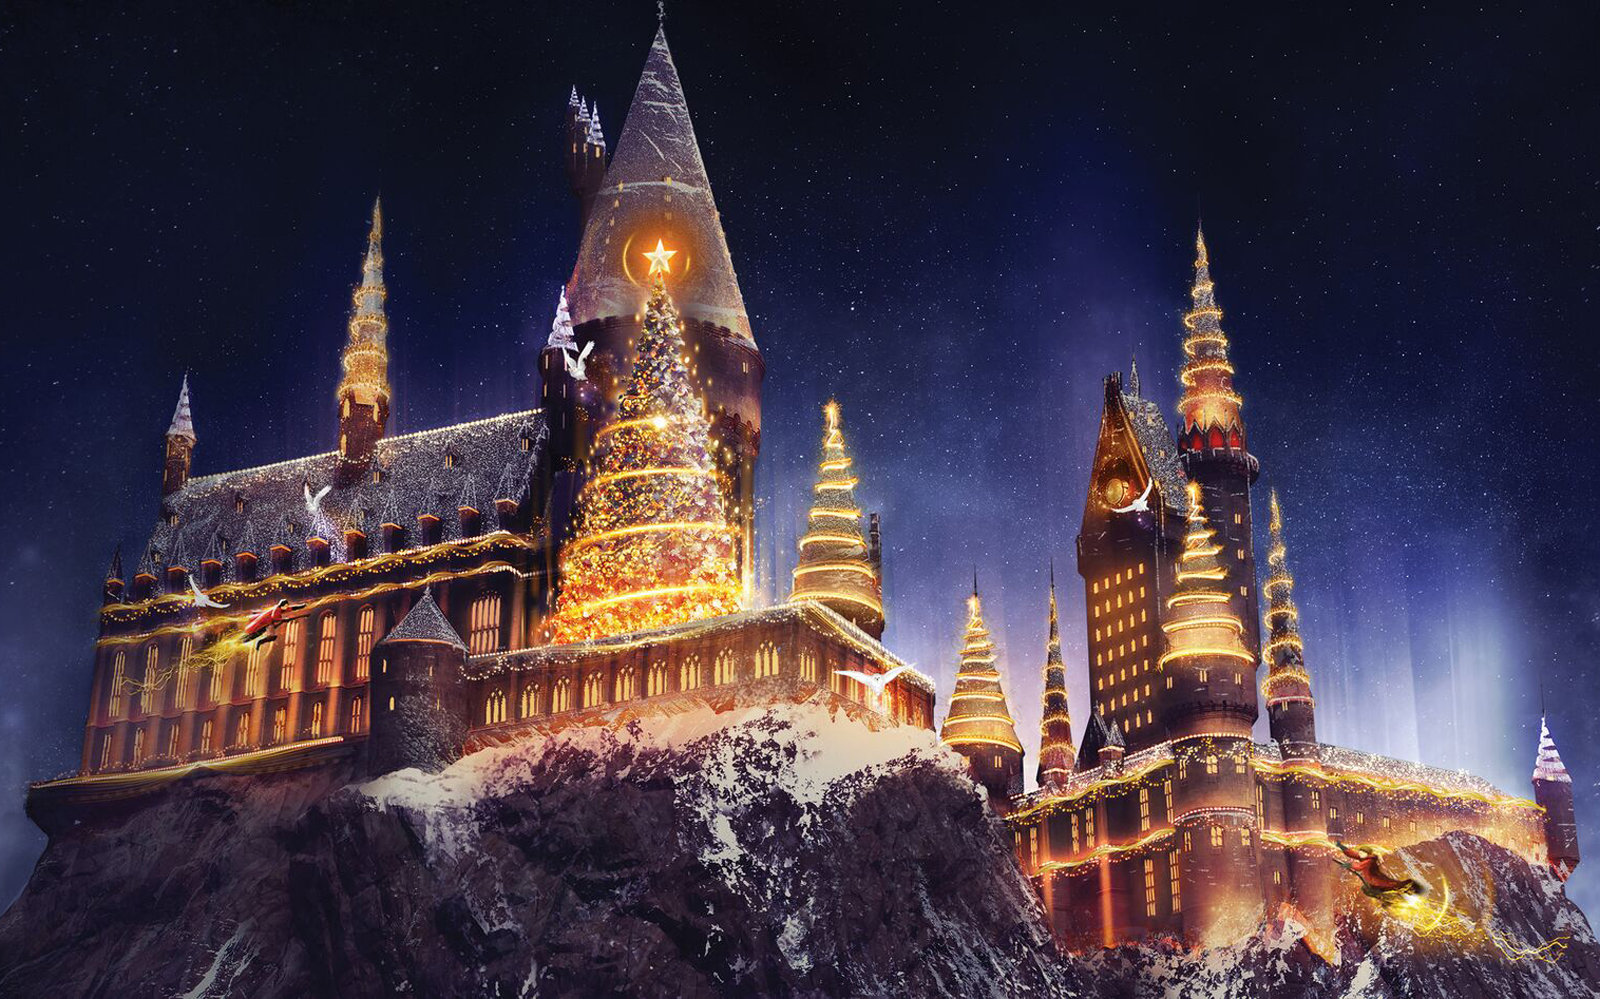 Harry Potter's Christmas in the Wizarding World exhibition comes to Bangkok